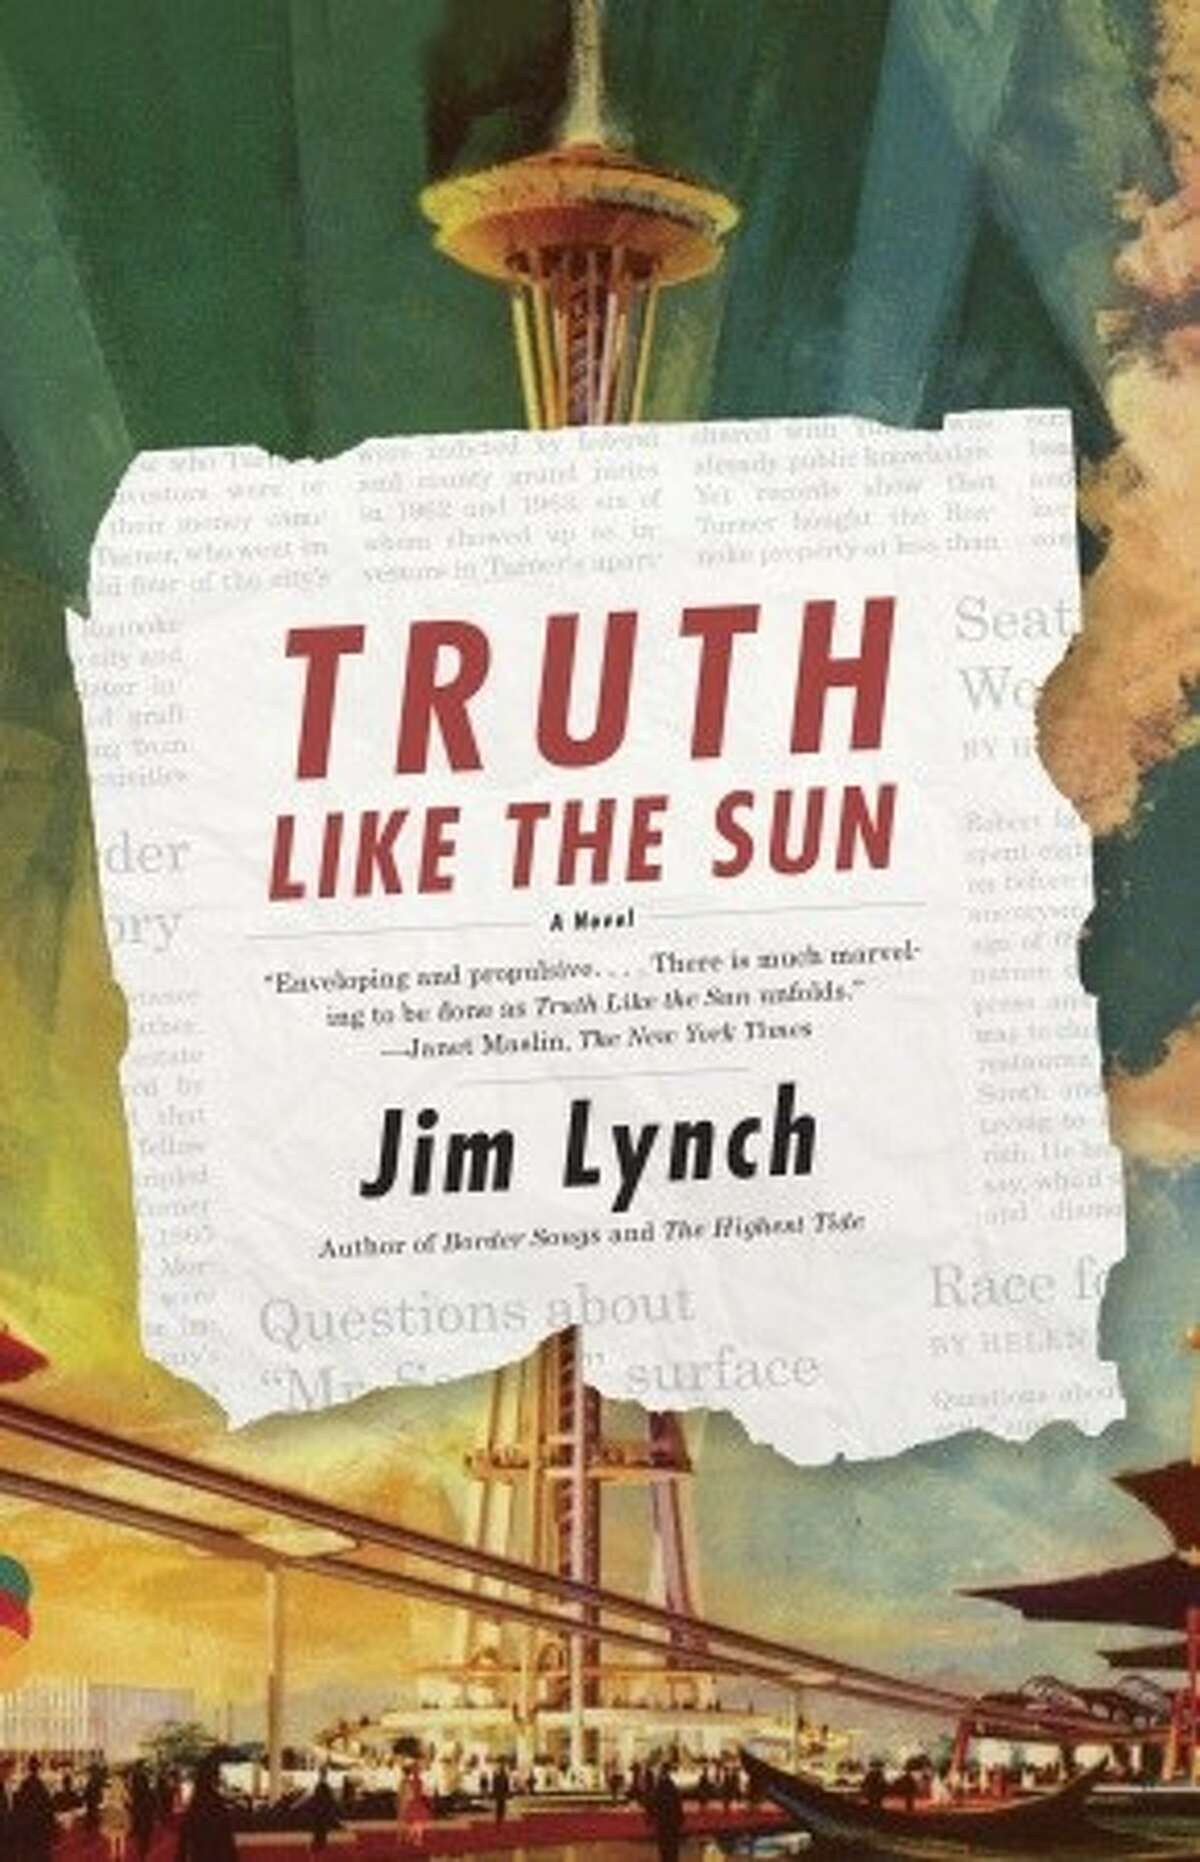 From the mind of former Seattle Times journalist Jim Lynch, this political thriller features an ethics-bending reporter for the SeattlePI. She does get the scoop on the political aspirations of a well-loved public figure.